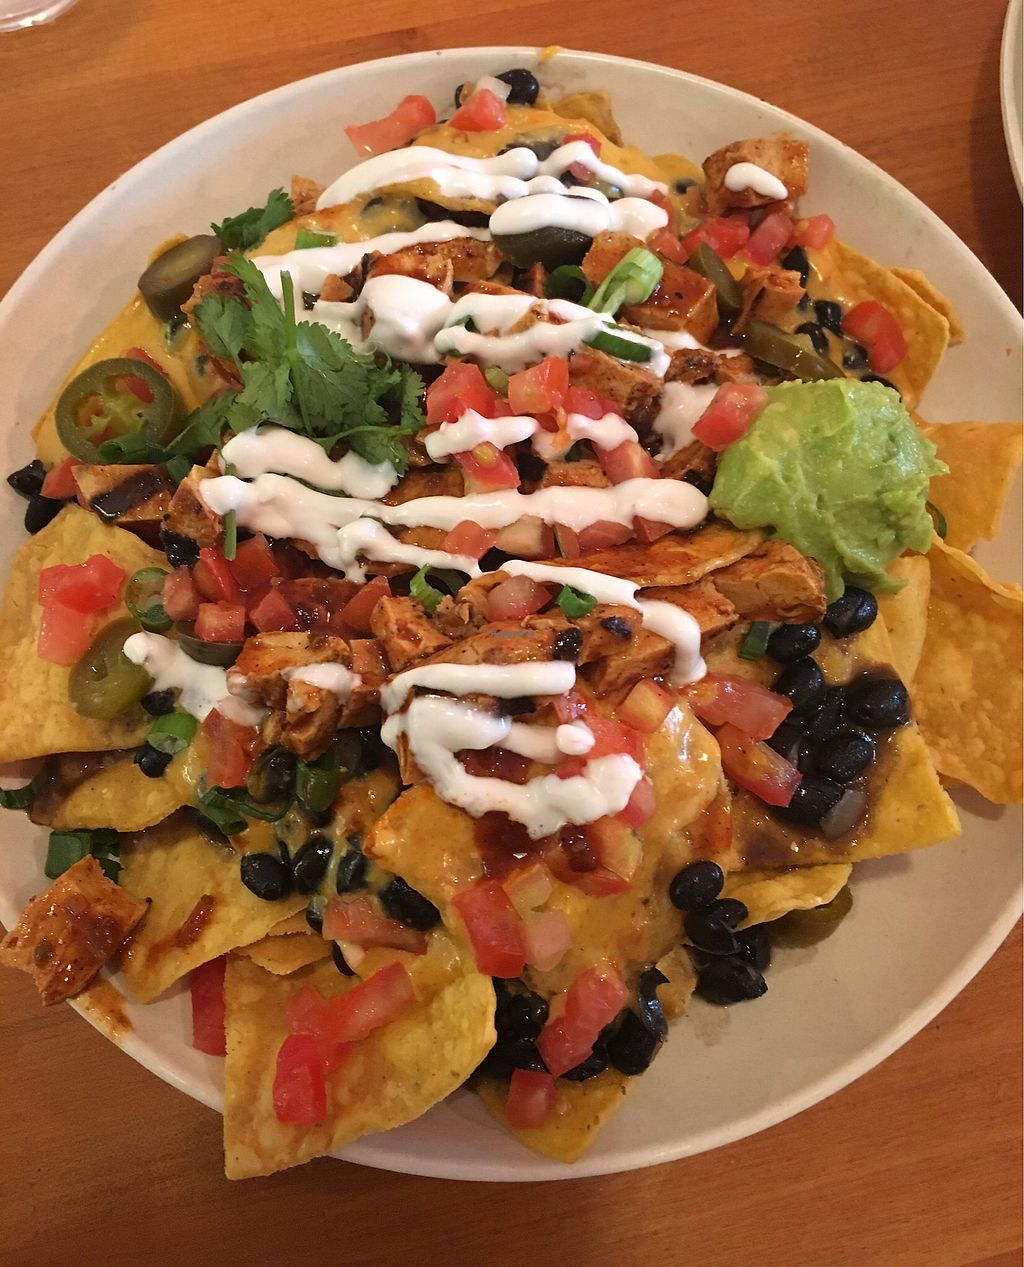 """Photo of Veggie Grill - University Center  by <a href=""""/members/profile/buzzthepug"""">buzzthepug</a> <br/>They do such an interesting and great take on vegan nachos!  <br/> March 22, 2018  - <a href='/contact/abuse/image/9434/374570'>Report</a>"""